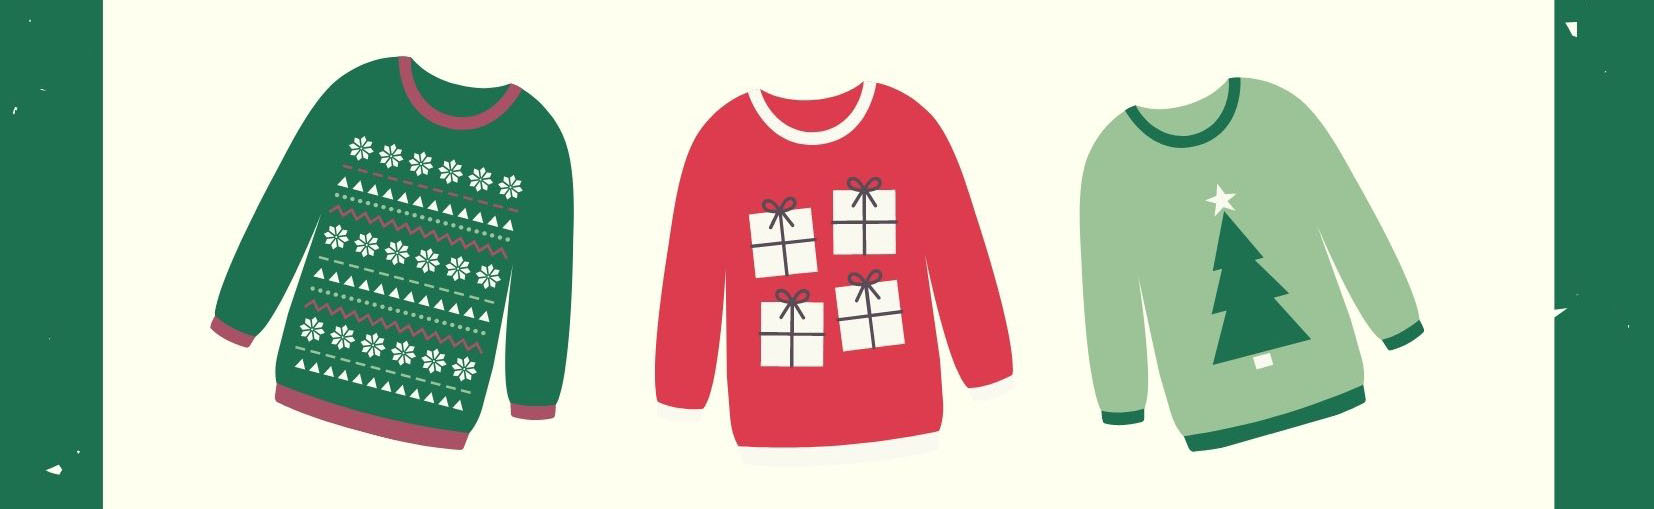 Christian Academy School System | Sweaters and Stories | December 17, 2020